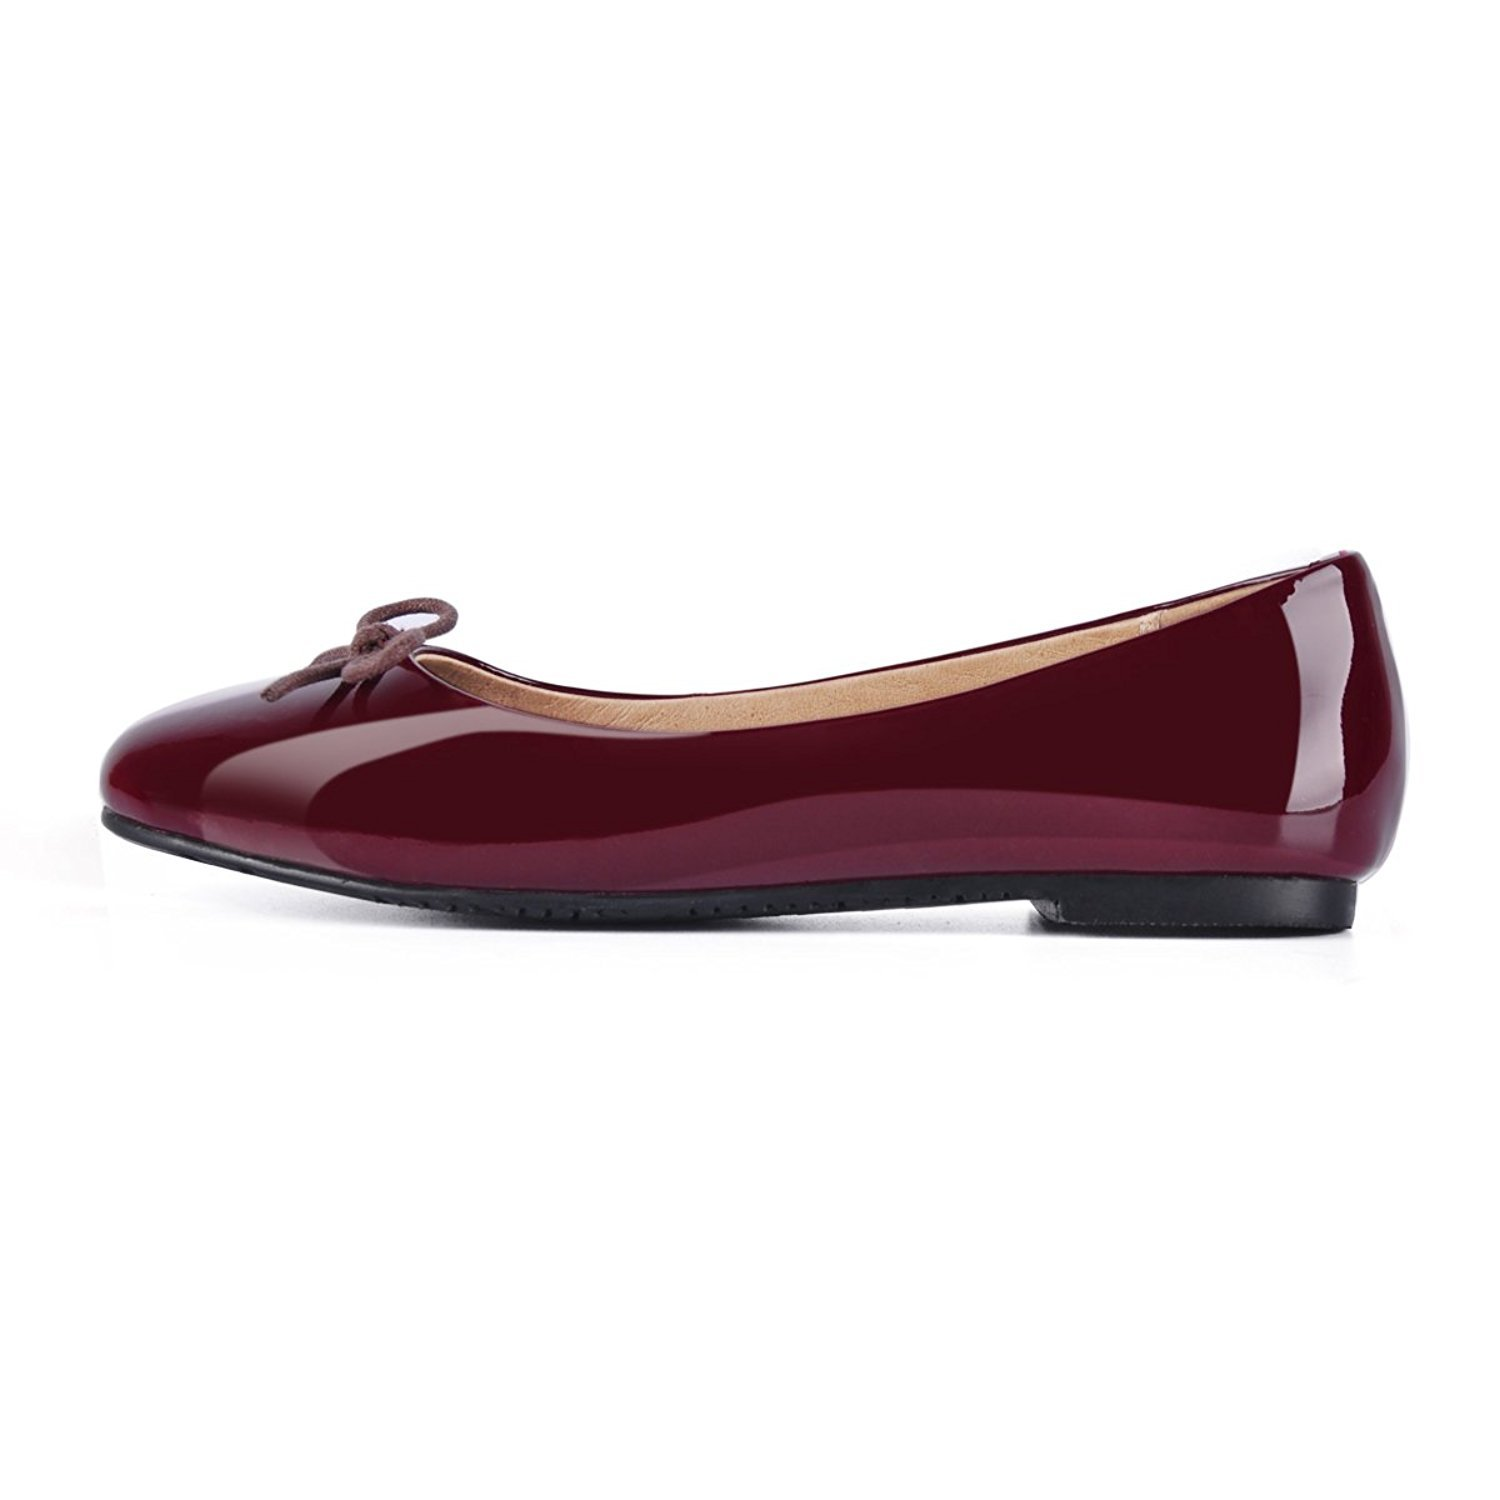 Joogo Women Round Toe Ballet Flats with Bow Tie Slip B0788G8QQ2 On Casual Comfortable Shoes B0788G8QQ2 Slip 12 B(M) US|Wine Red f4a813